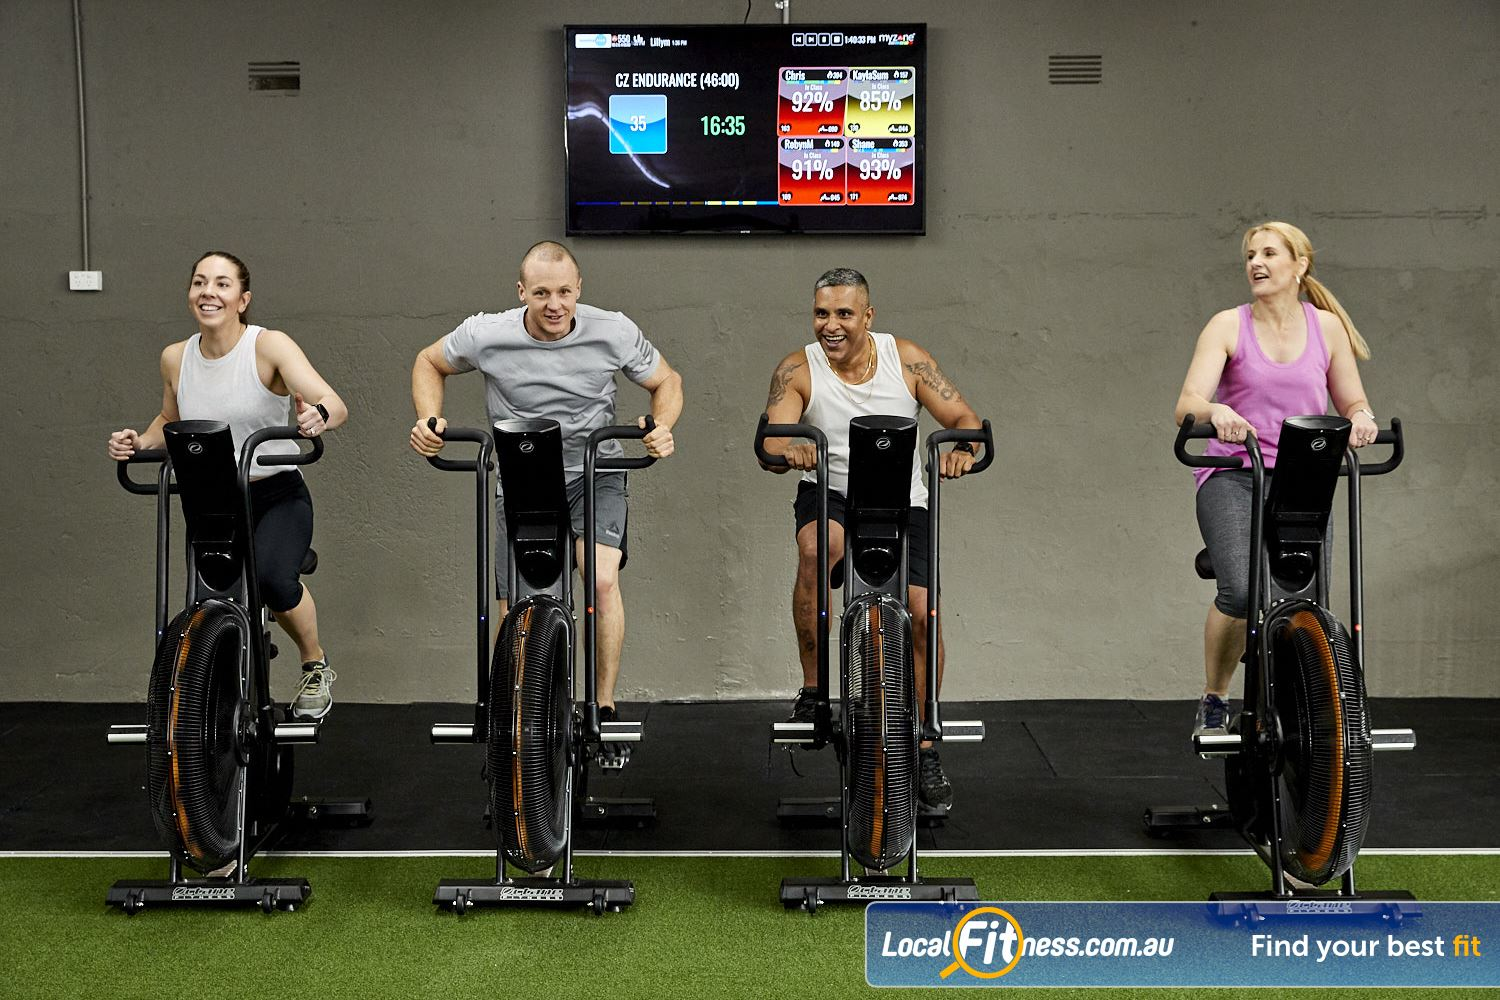 Coaching Zone Ferntree Gully Get a HIIT workout using our Assualt Air Bikes.